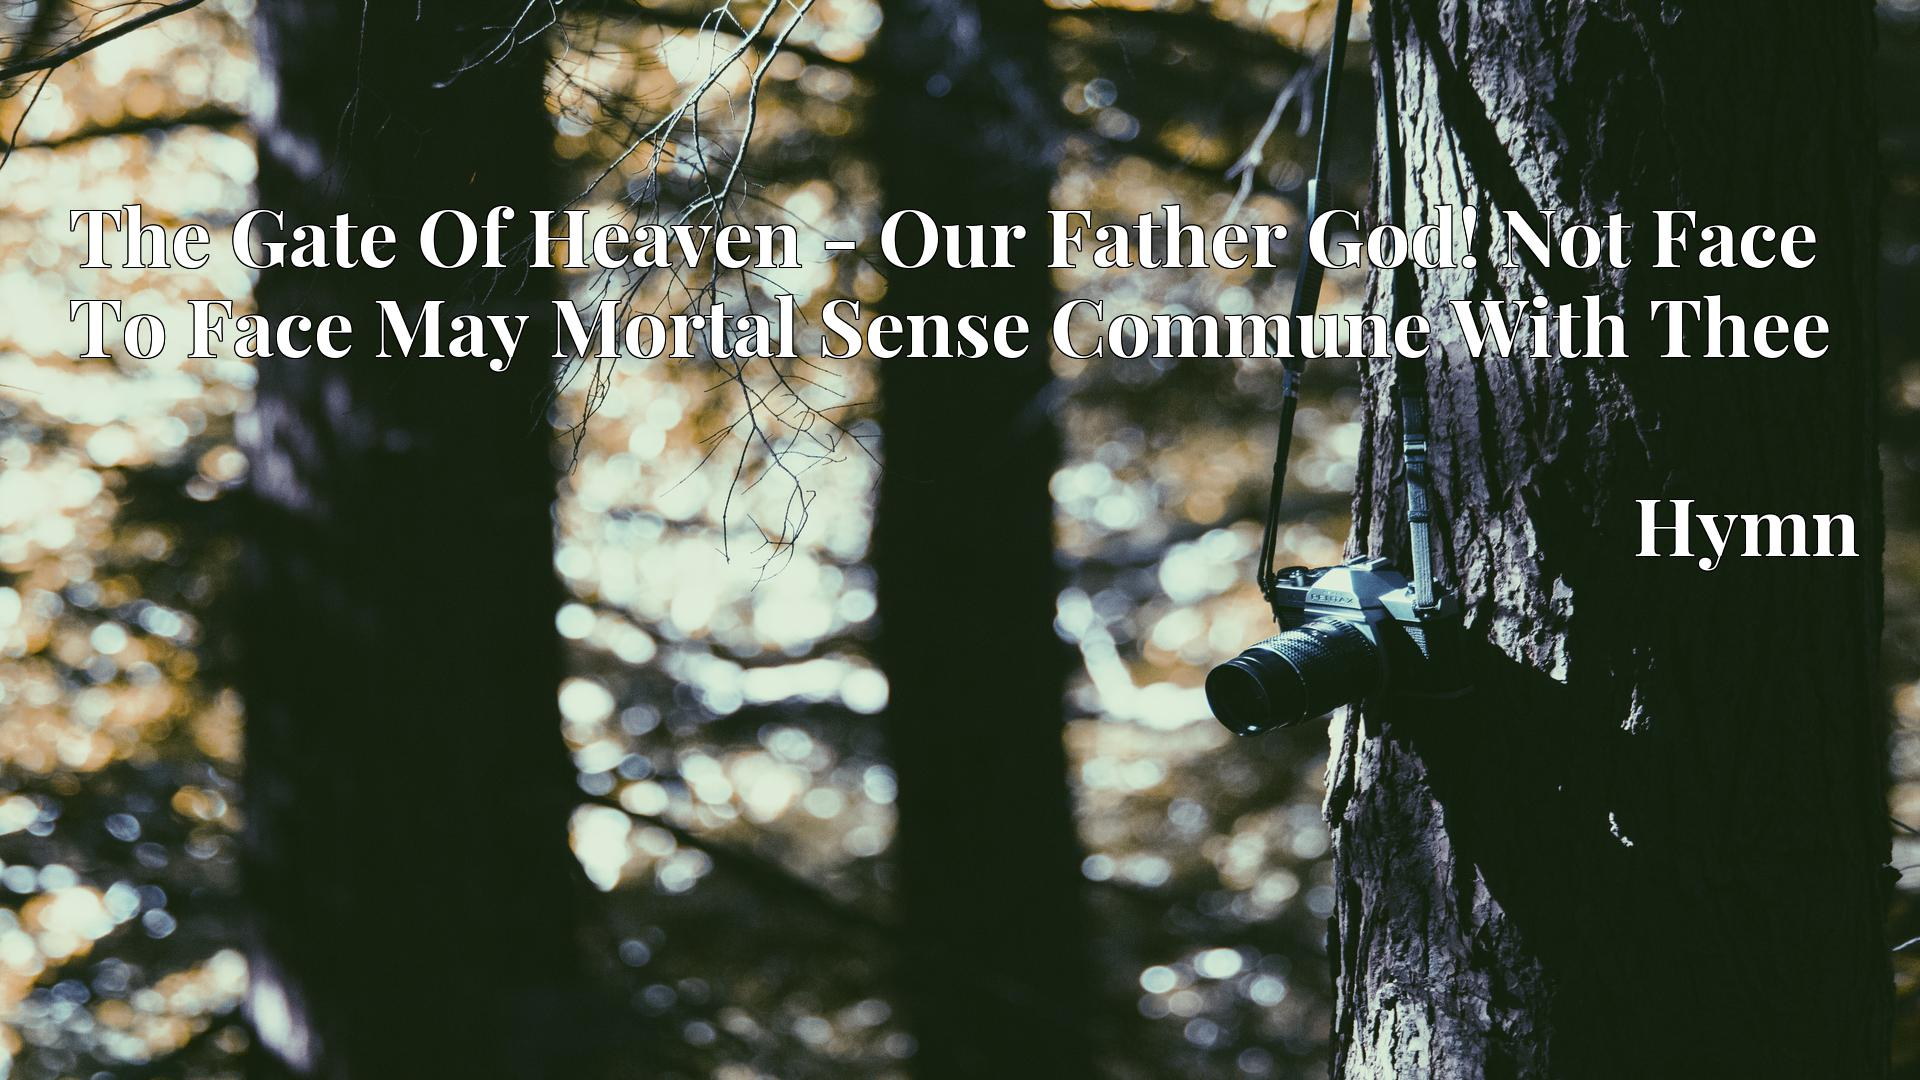 The Gate Of Heaven - Our Father God! Not Face To Face May Mortal Sense Commune With Thee - Hymn